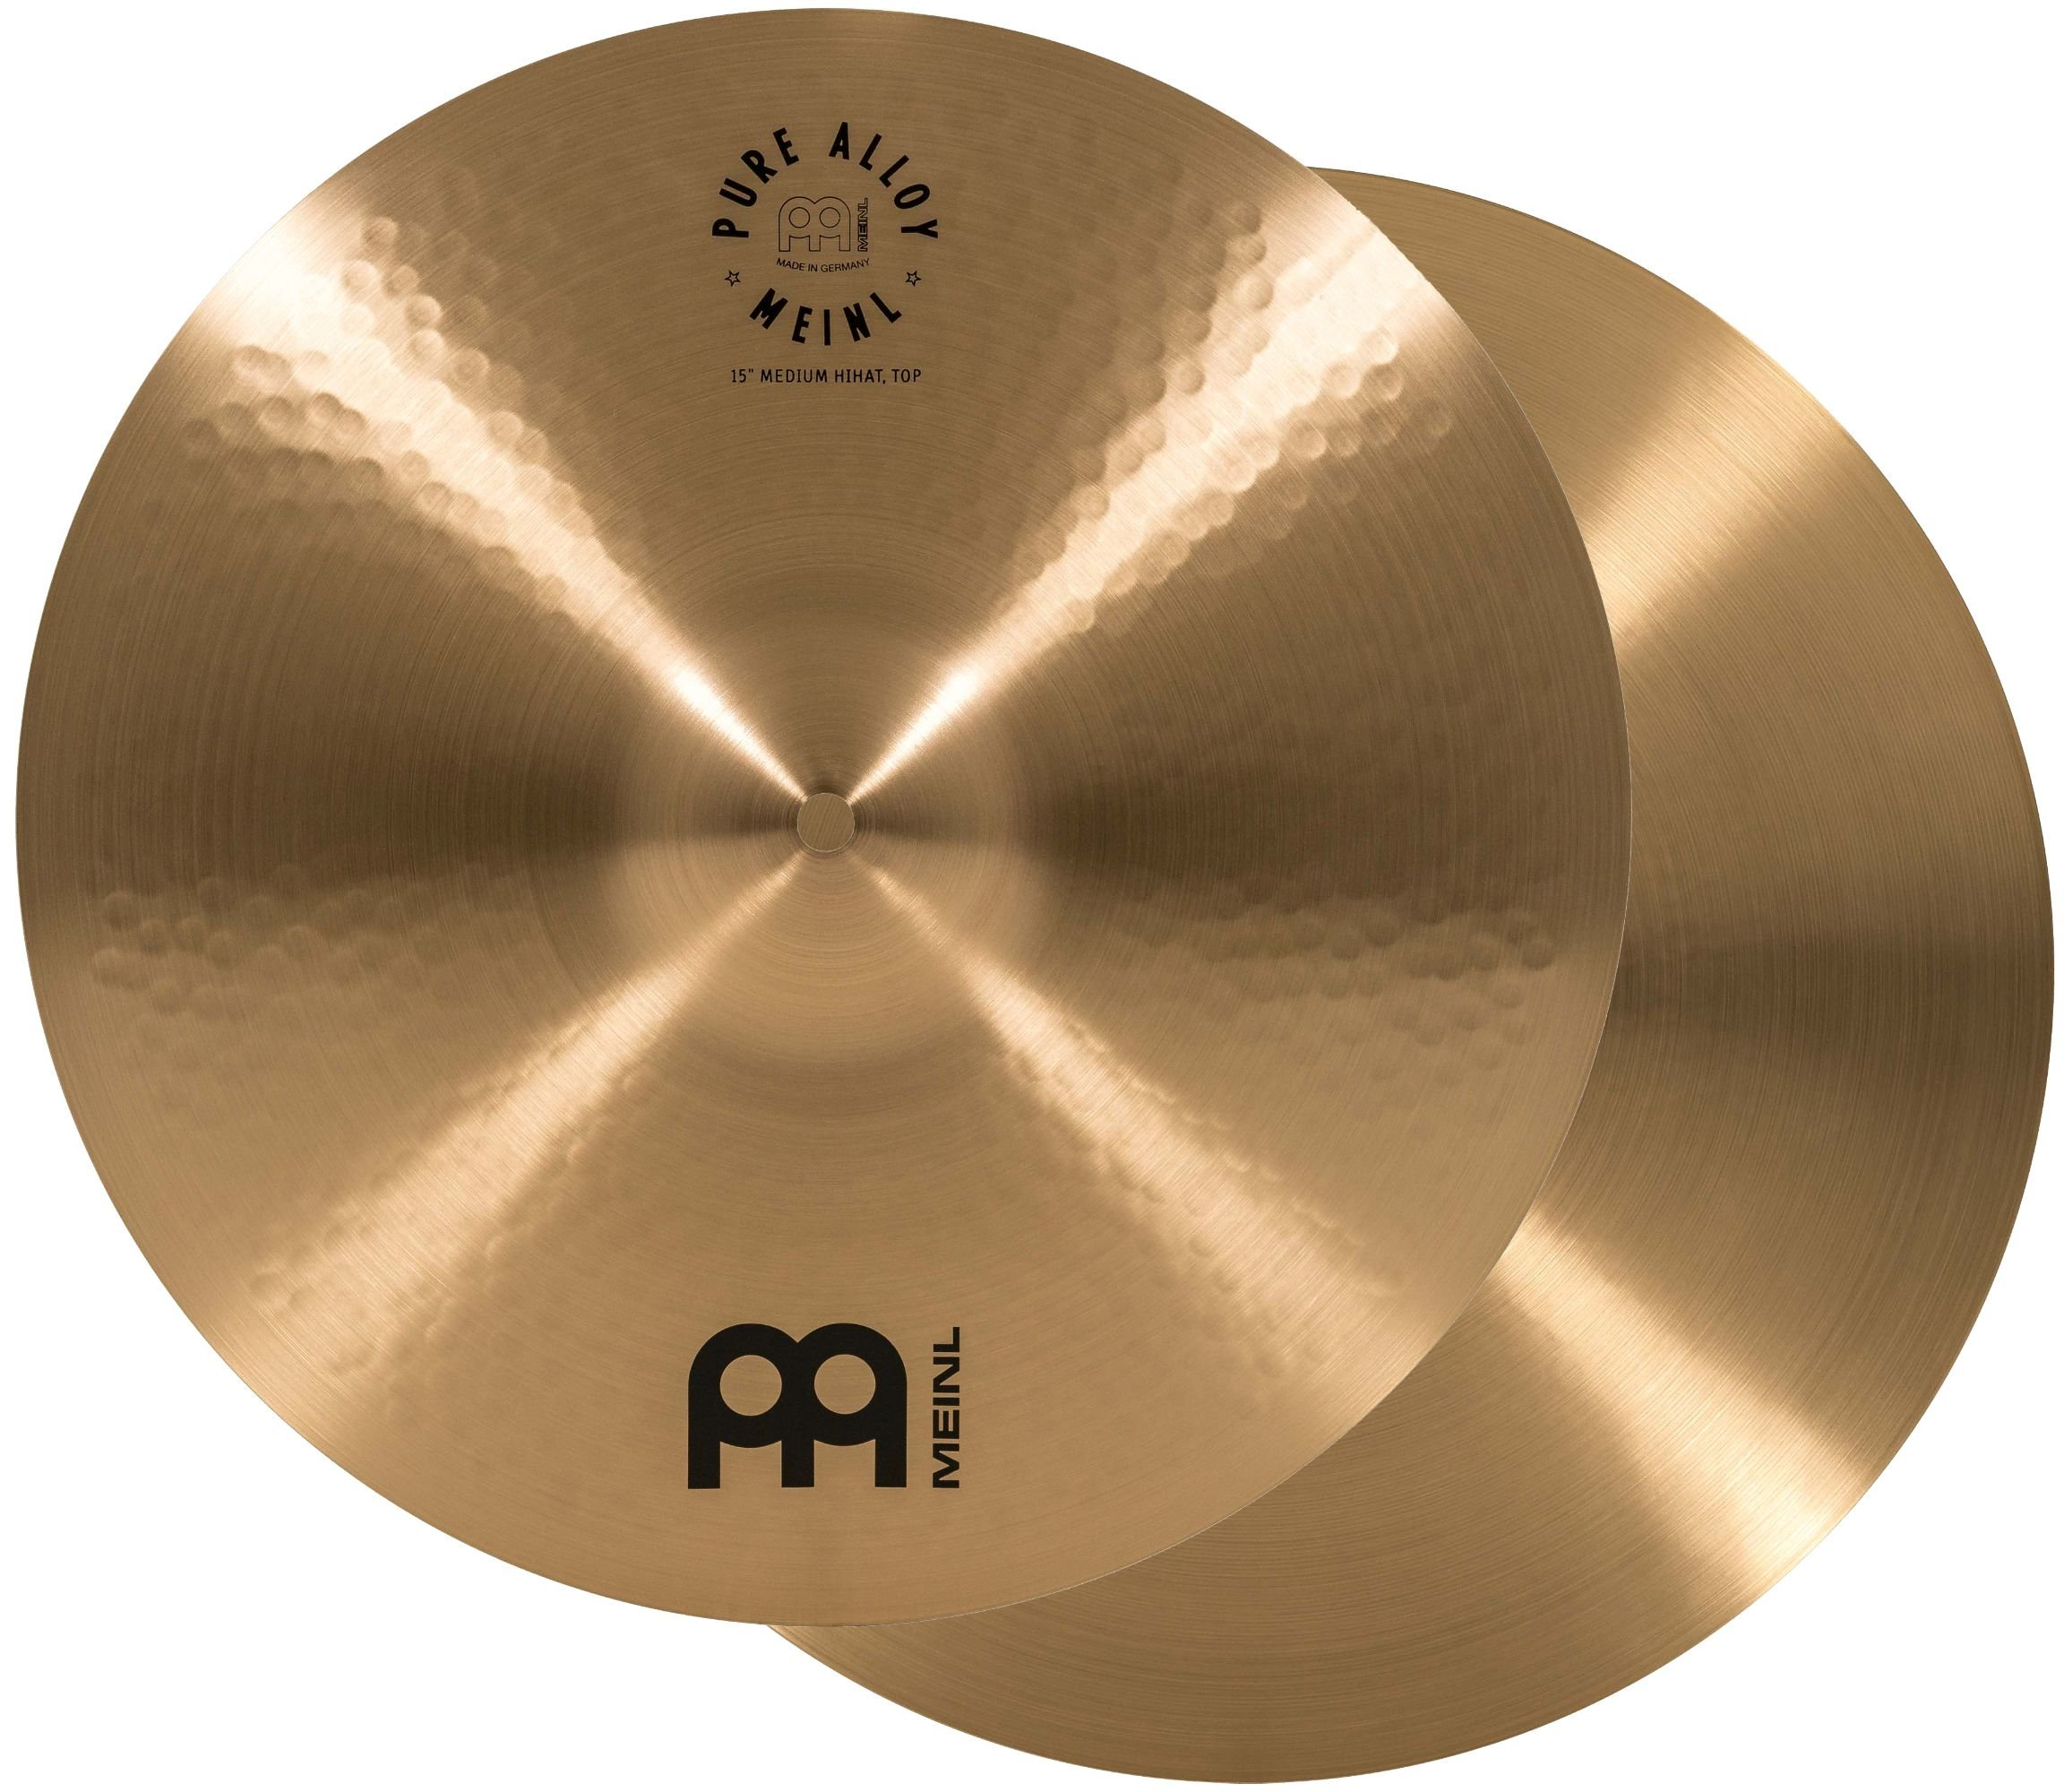 Meinl 15'' Medium HiHat (Hi Hat) Cymbal Pair - Pure Alloy Traditional - Made in Germany, 2-YEAR WARRANTY (PA15MH)